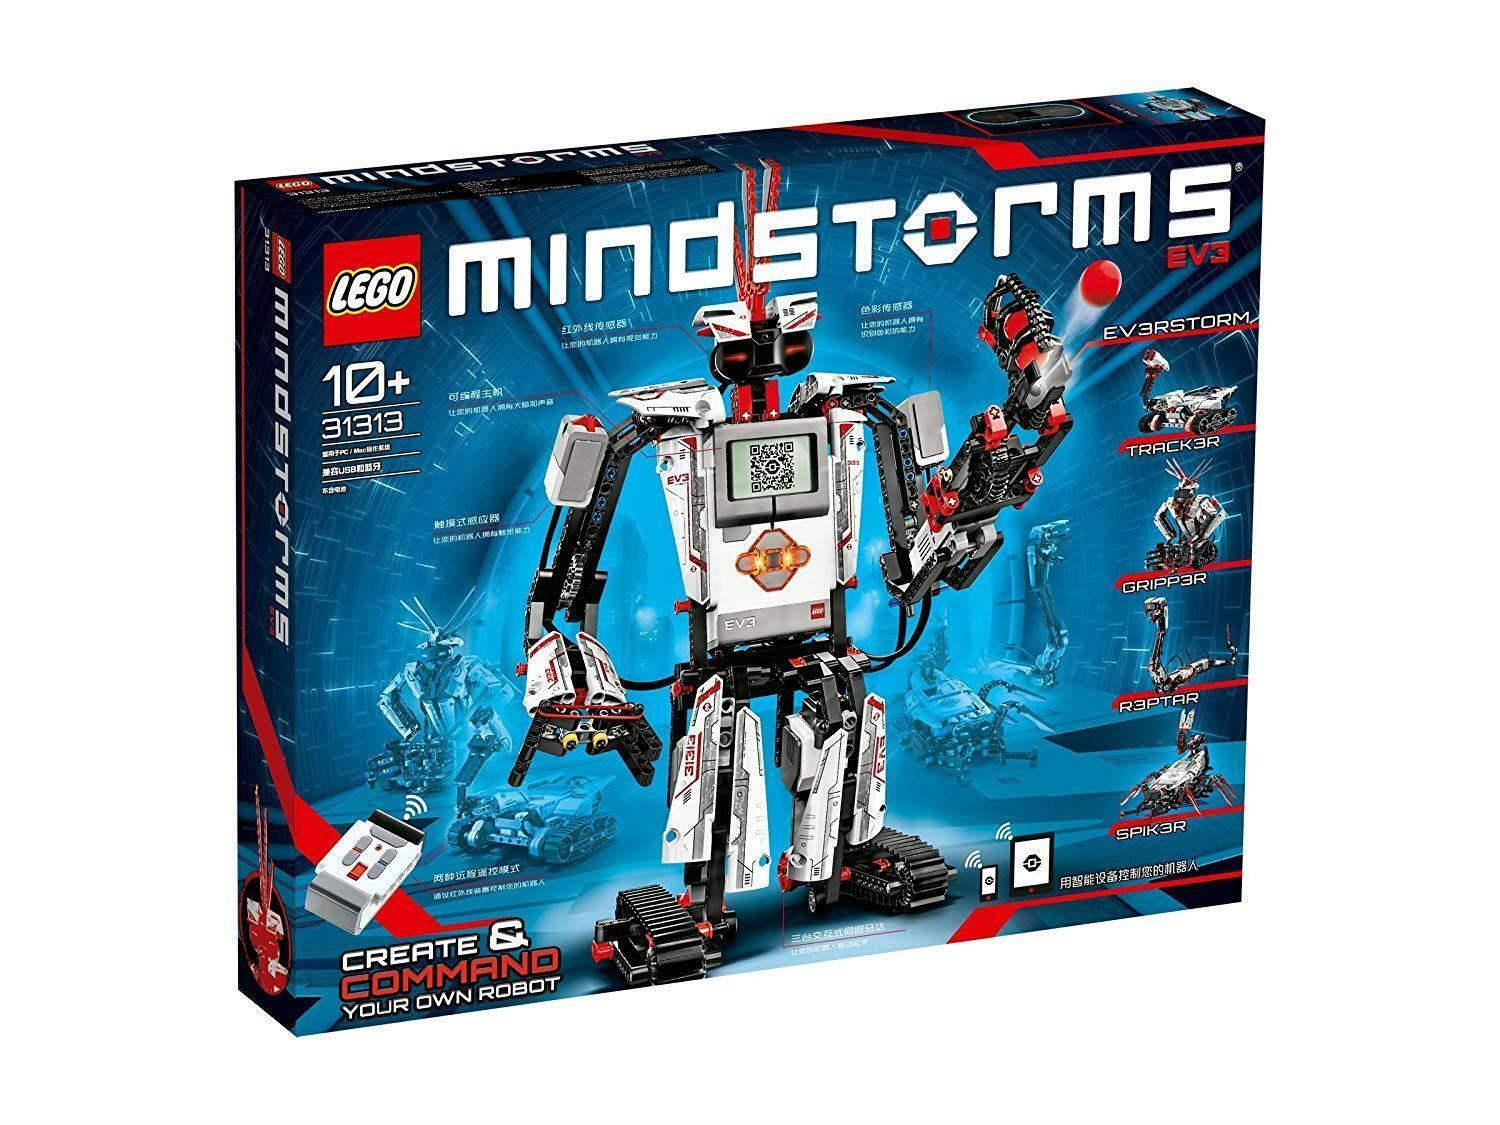 LEGO 31313 Mindstorms EV3 Robot Kit